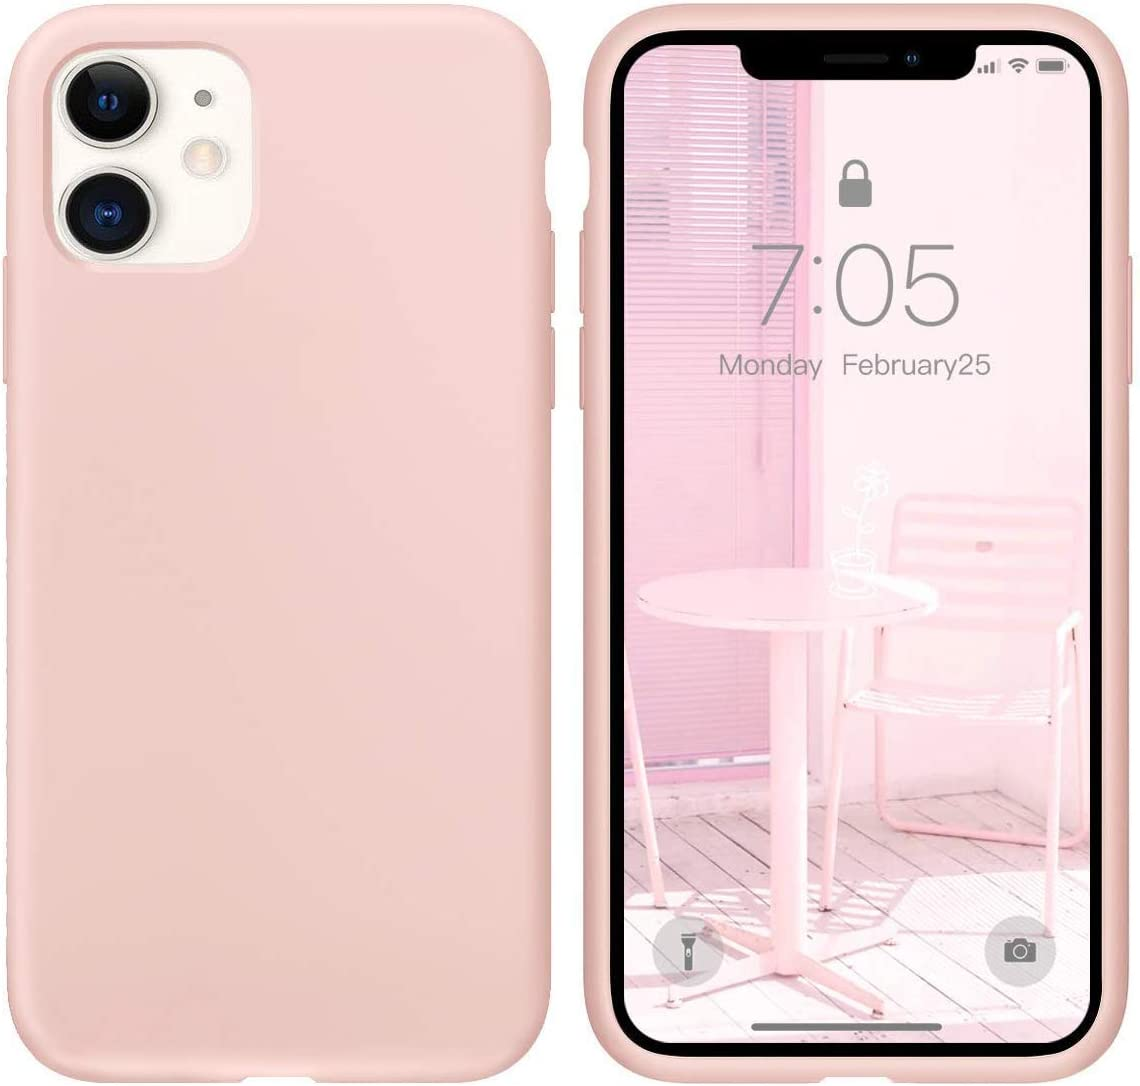 IceSword iPhone 11 Case Pink Sand, Thin Liquid Silicone Case, Soft Silk Microfiber Cloth, Matte Pure Cute Pink, Gel Rubber Full Body, Cool Protective Shockproof Cover 6.1